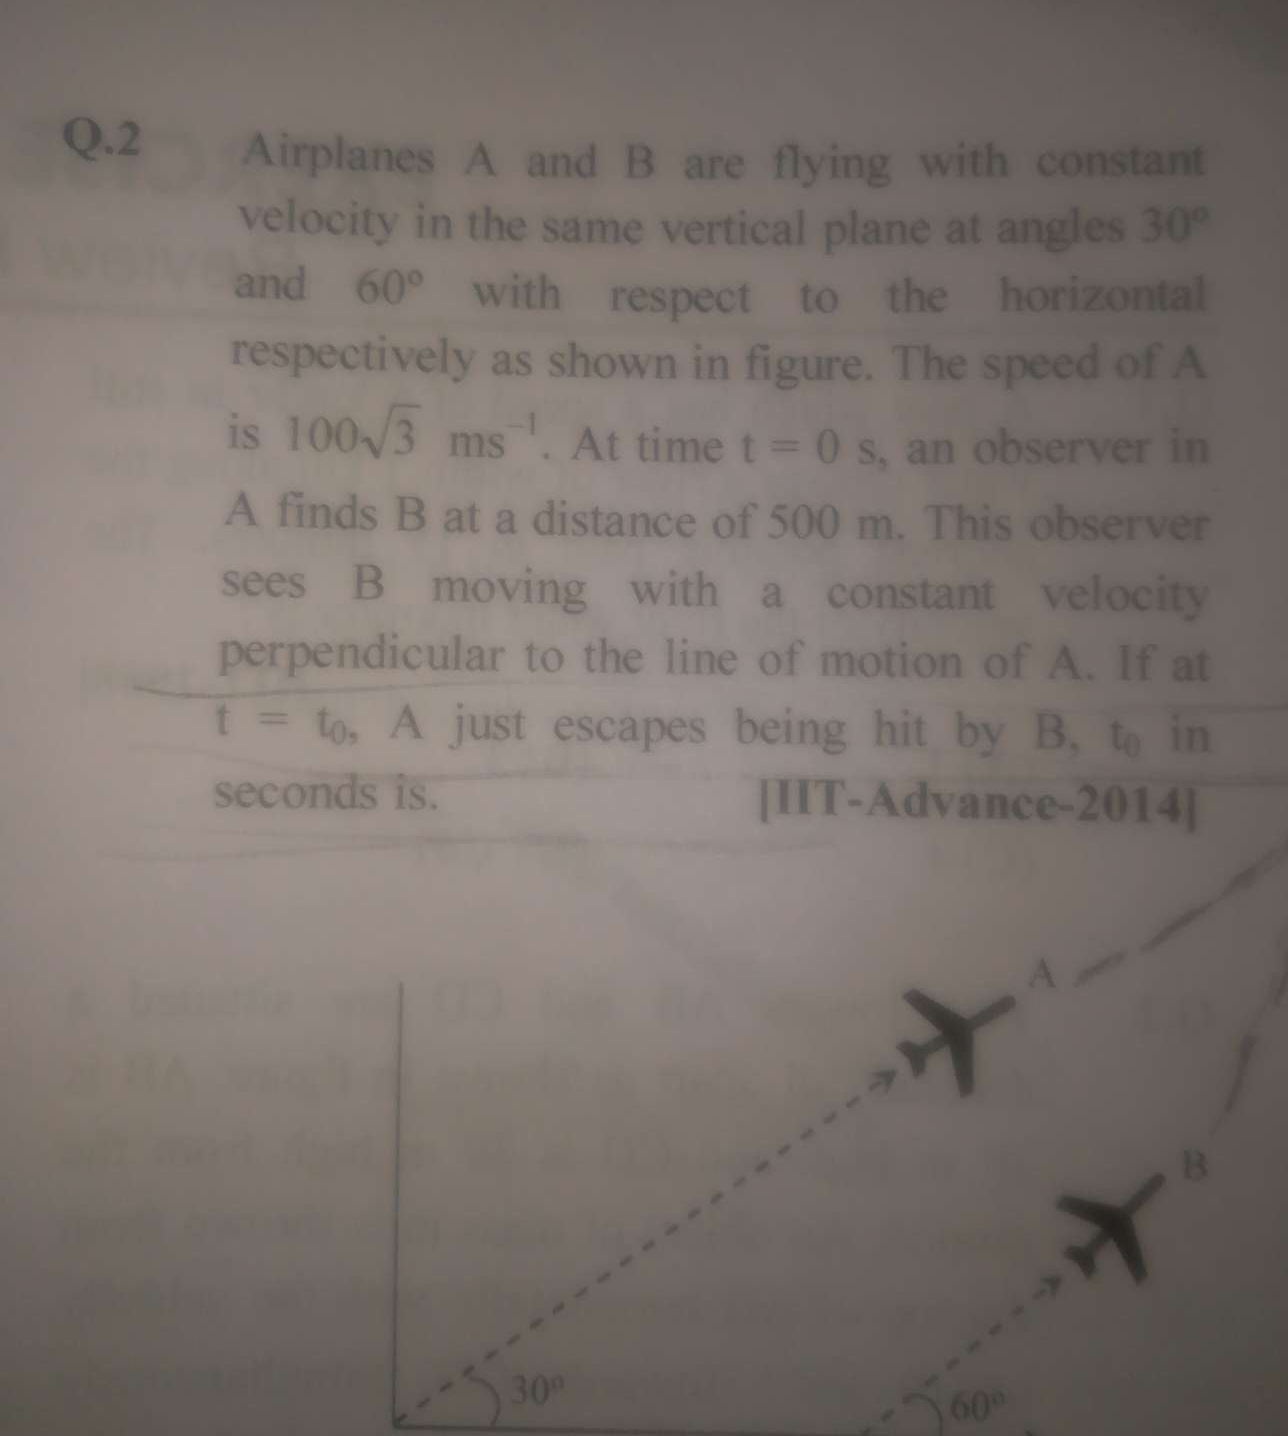 Airplanes A and B are flying with constant velocity in the same vertical plane at angles 30° and 60° with respect to the horizontal respectively as shown in figure.